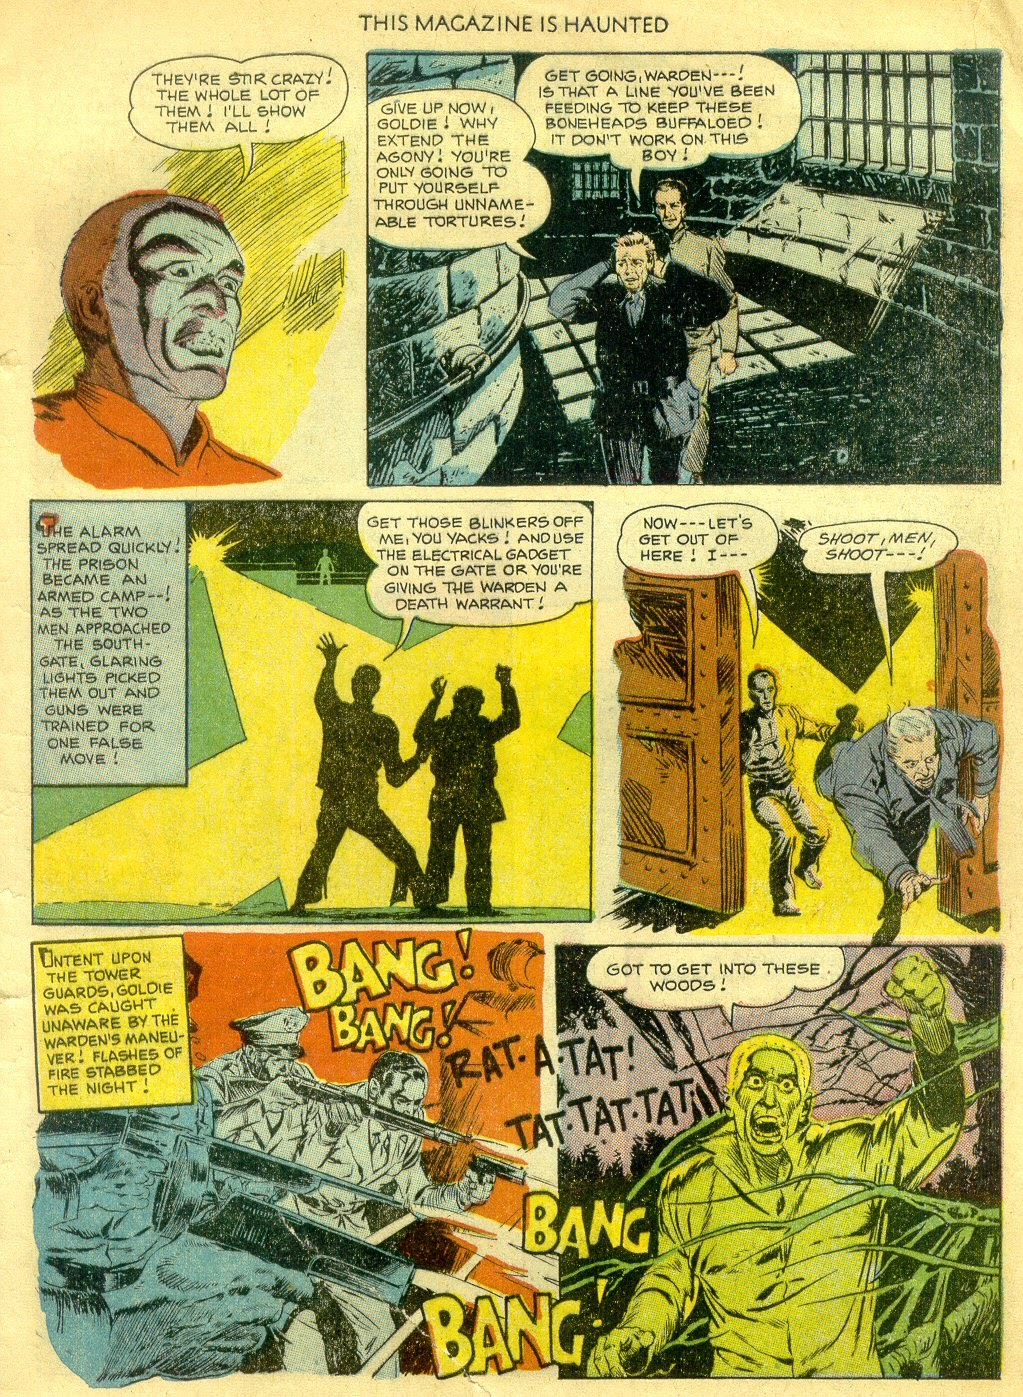 Read online This Magazine Is Haunted comic -  Issue #5 - 4